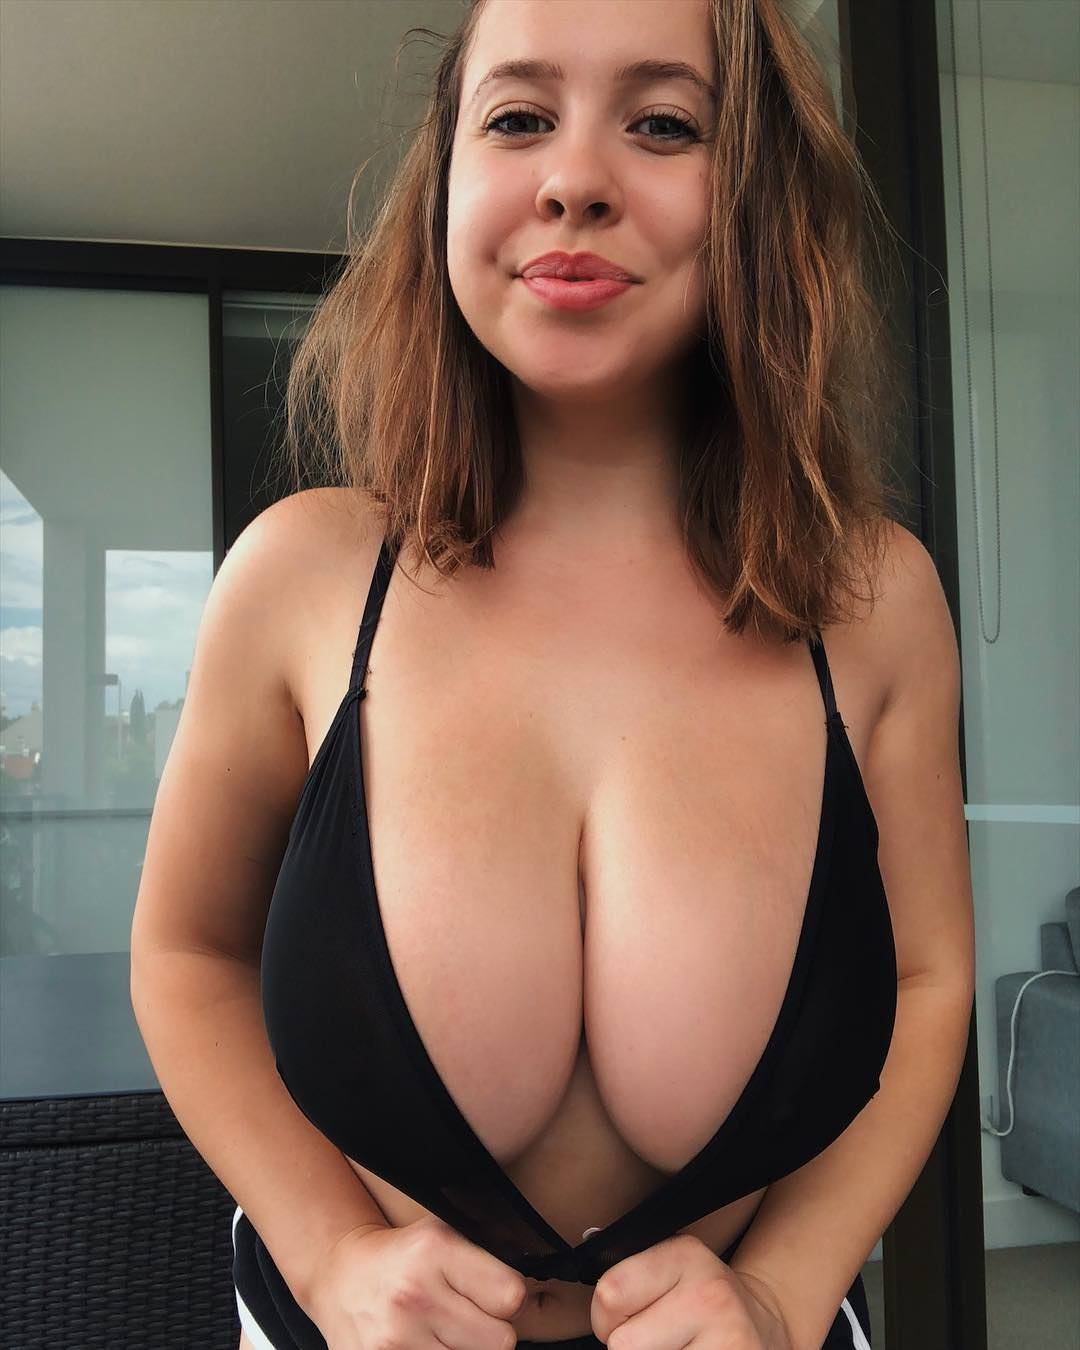 Hot Teen Shows Her Cleavage